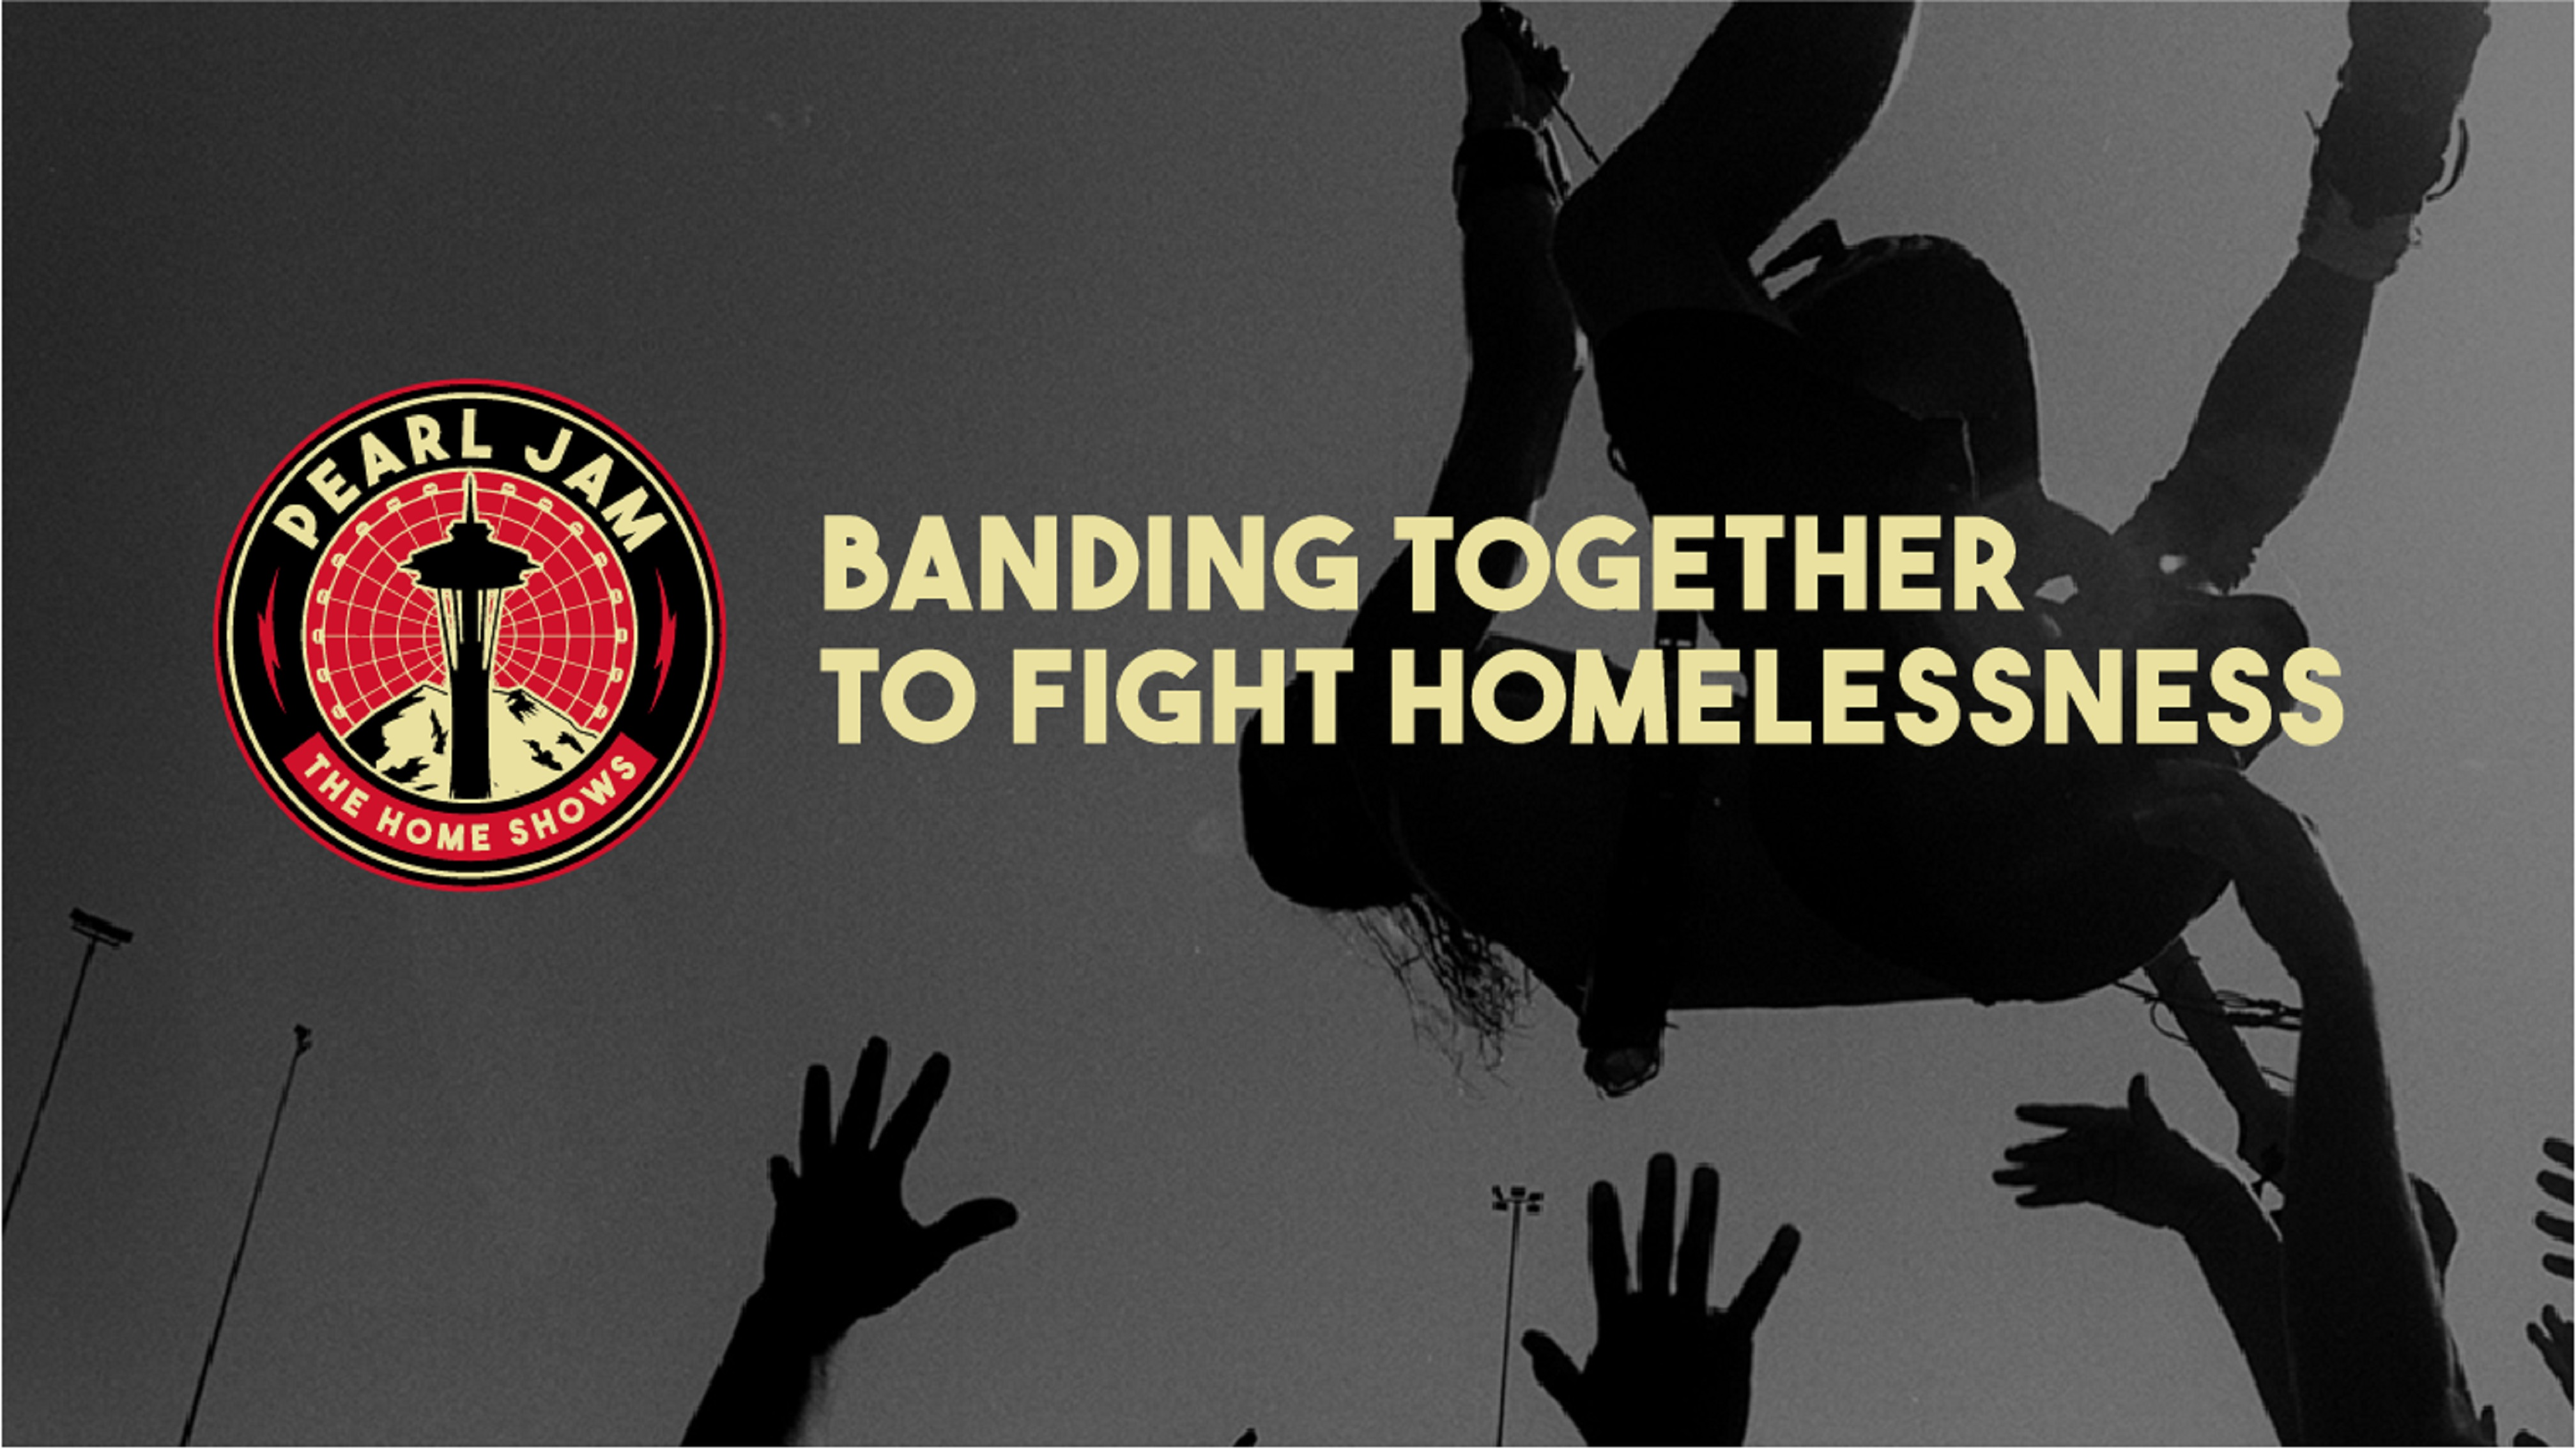 Band together with Pearl Jam to fight homelessness